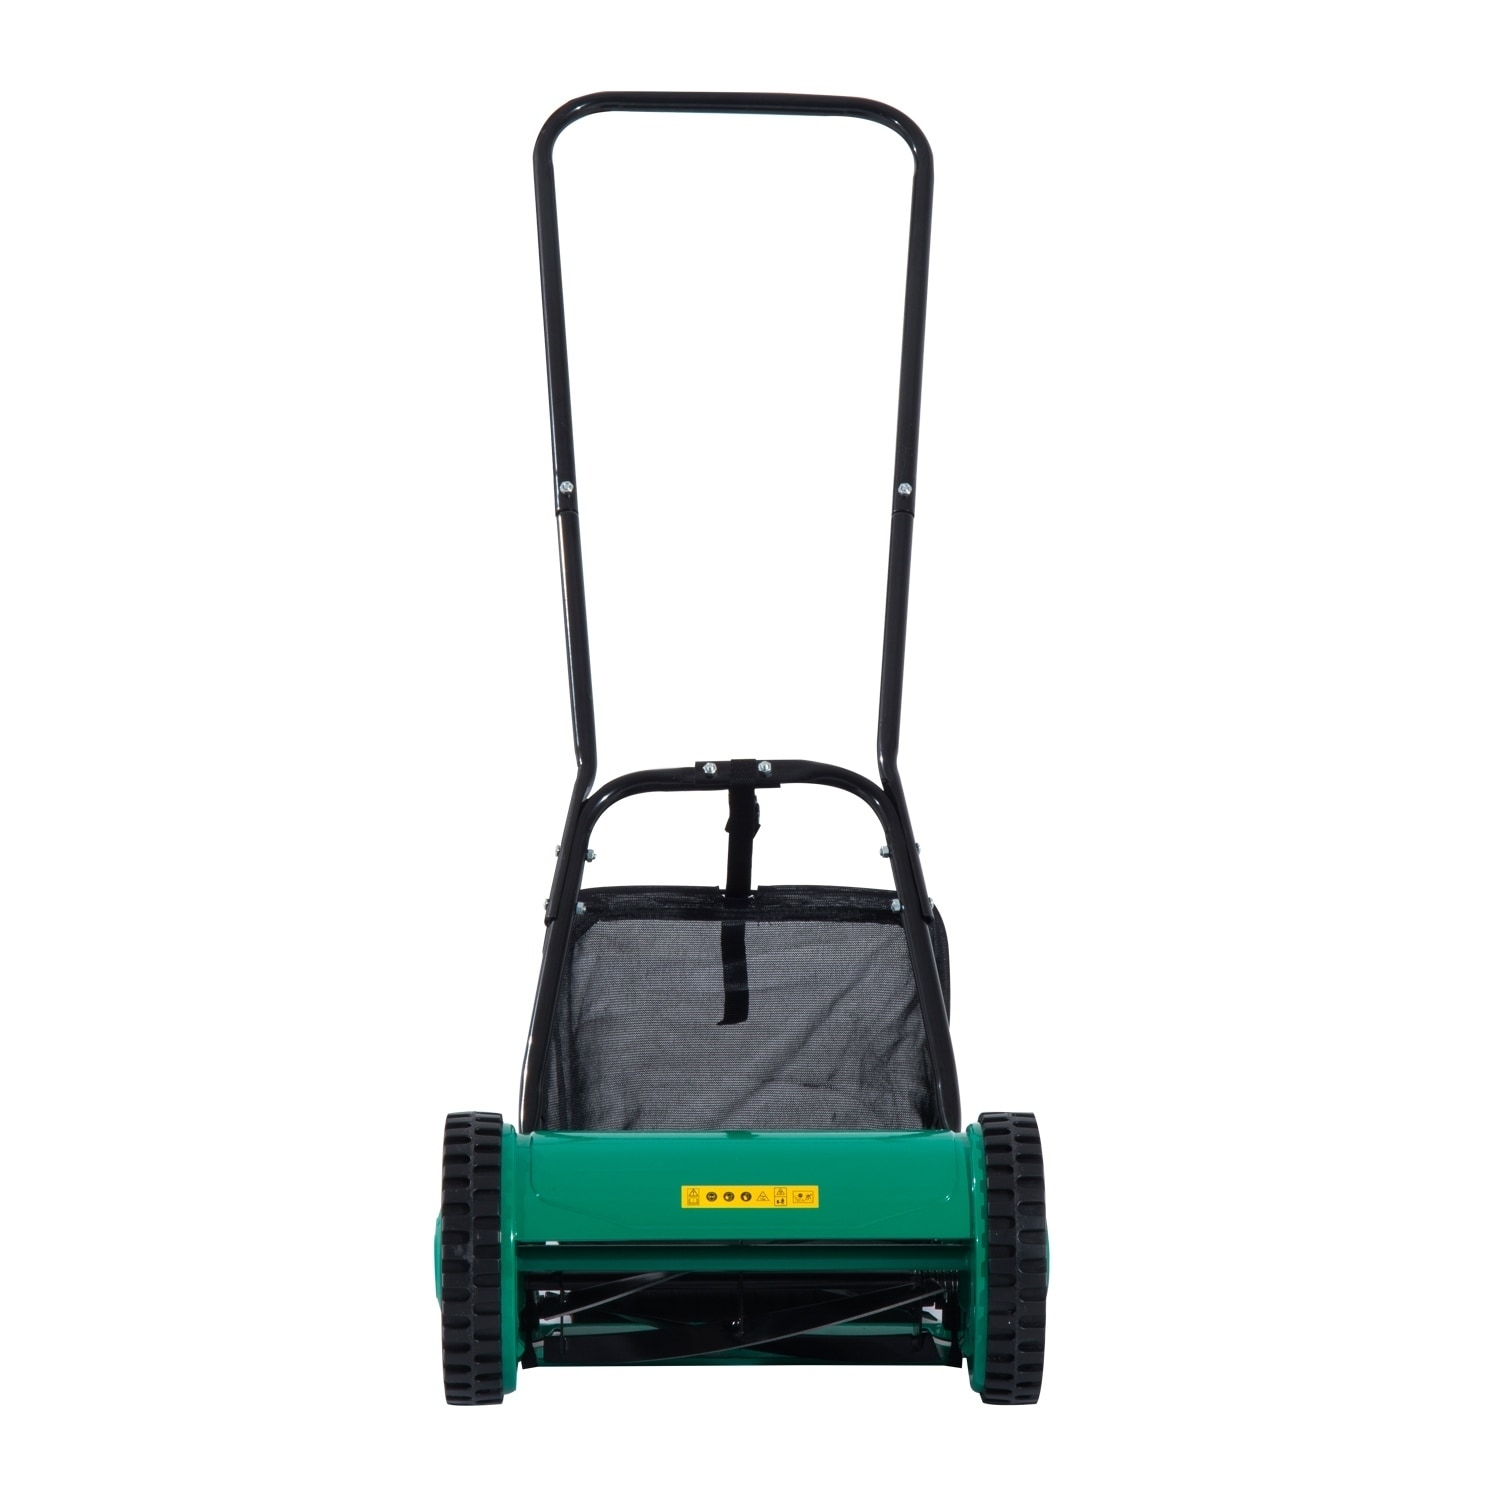 Aosom Outsunny 12 in. 5 Blade Push Lawn Mower with Grass ...